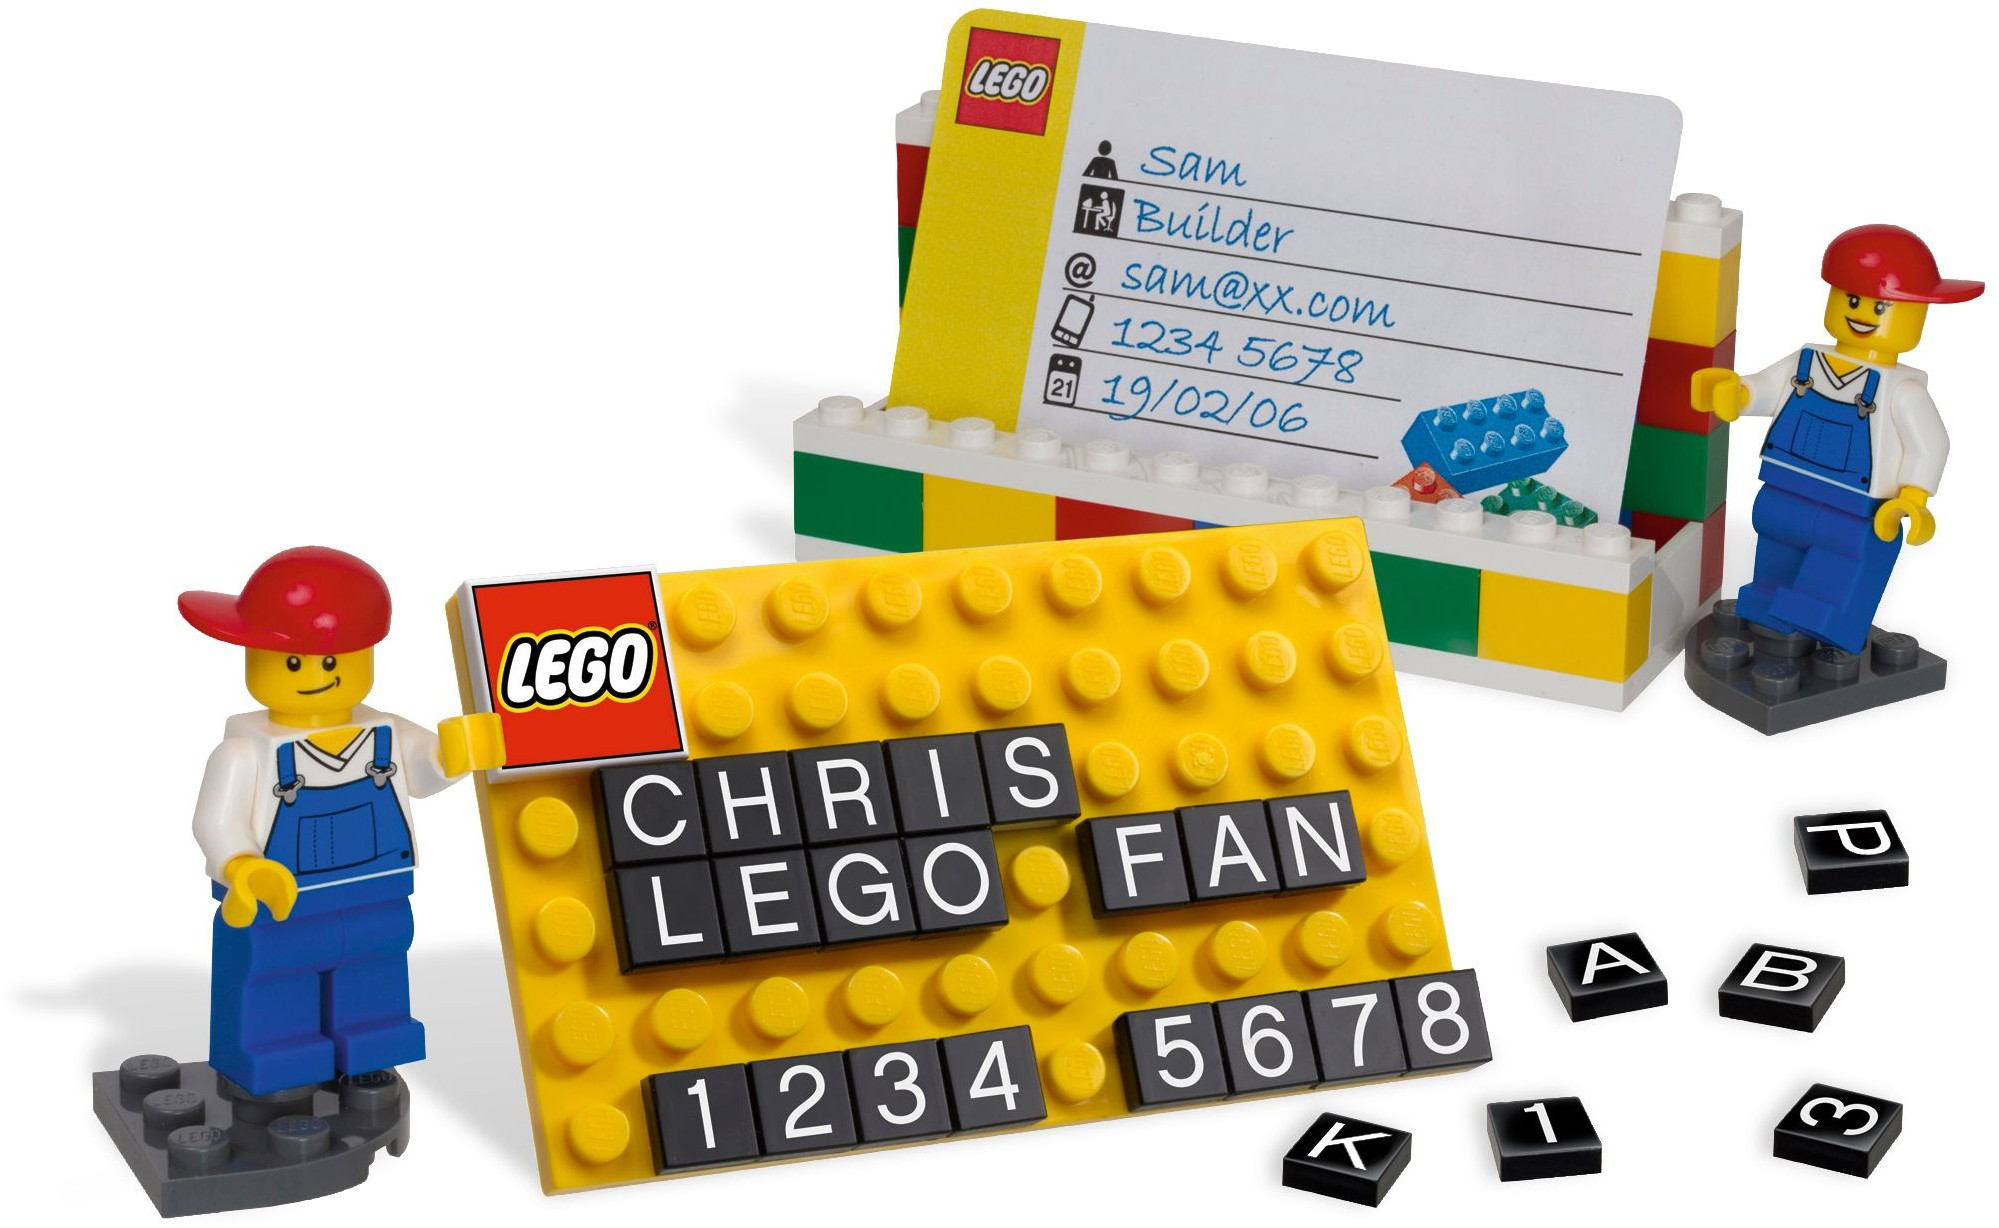 Lego Desk Business Card Holder 850425 - Walmart.com